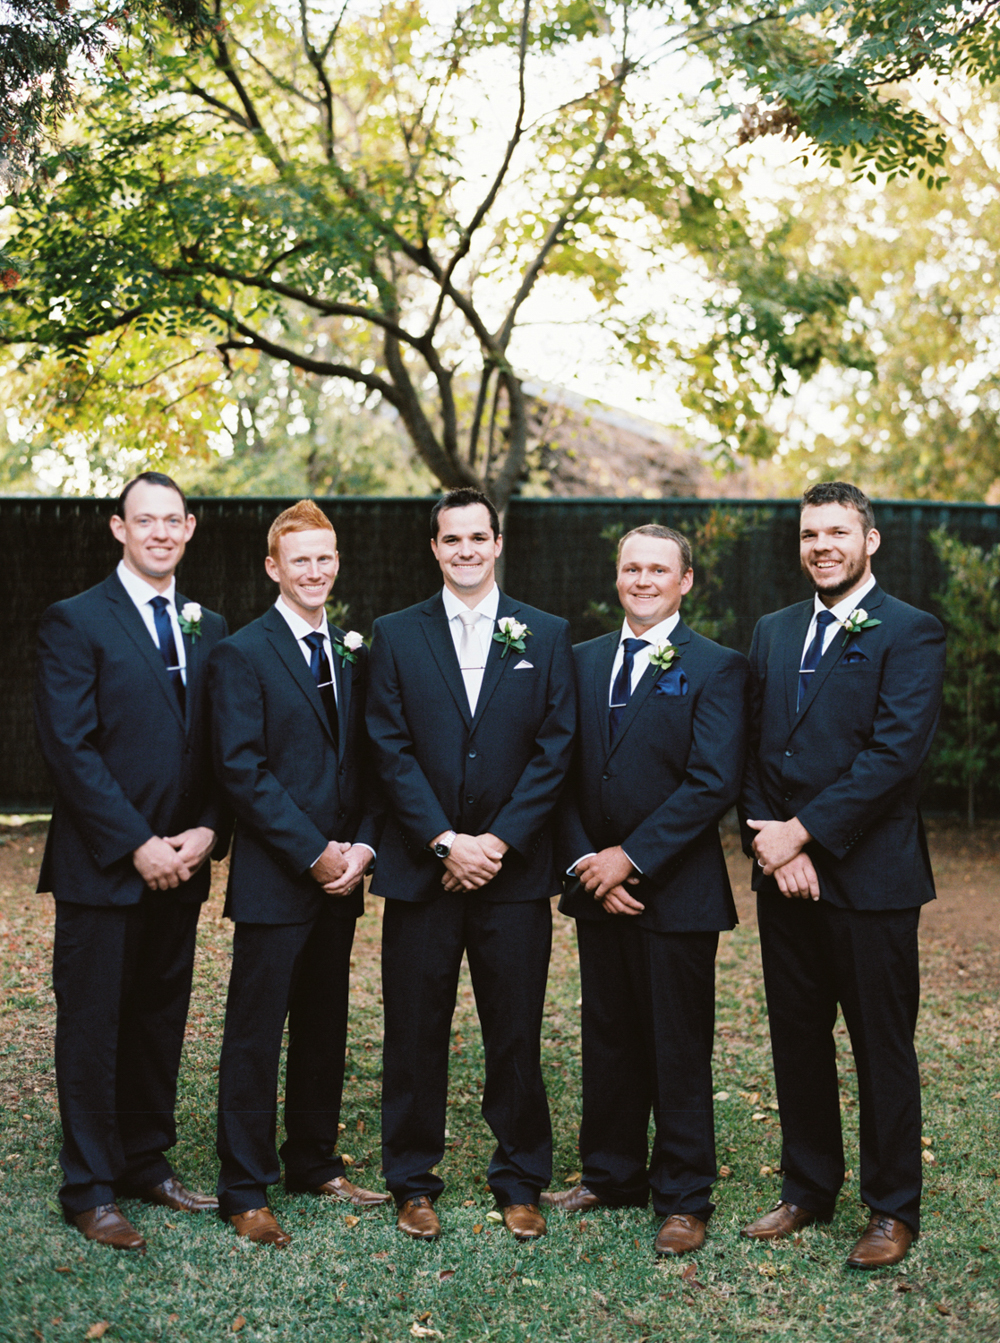 00049- Dubbo NSW Wedding Photographer Sheri McMahon.jpg